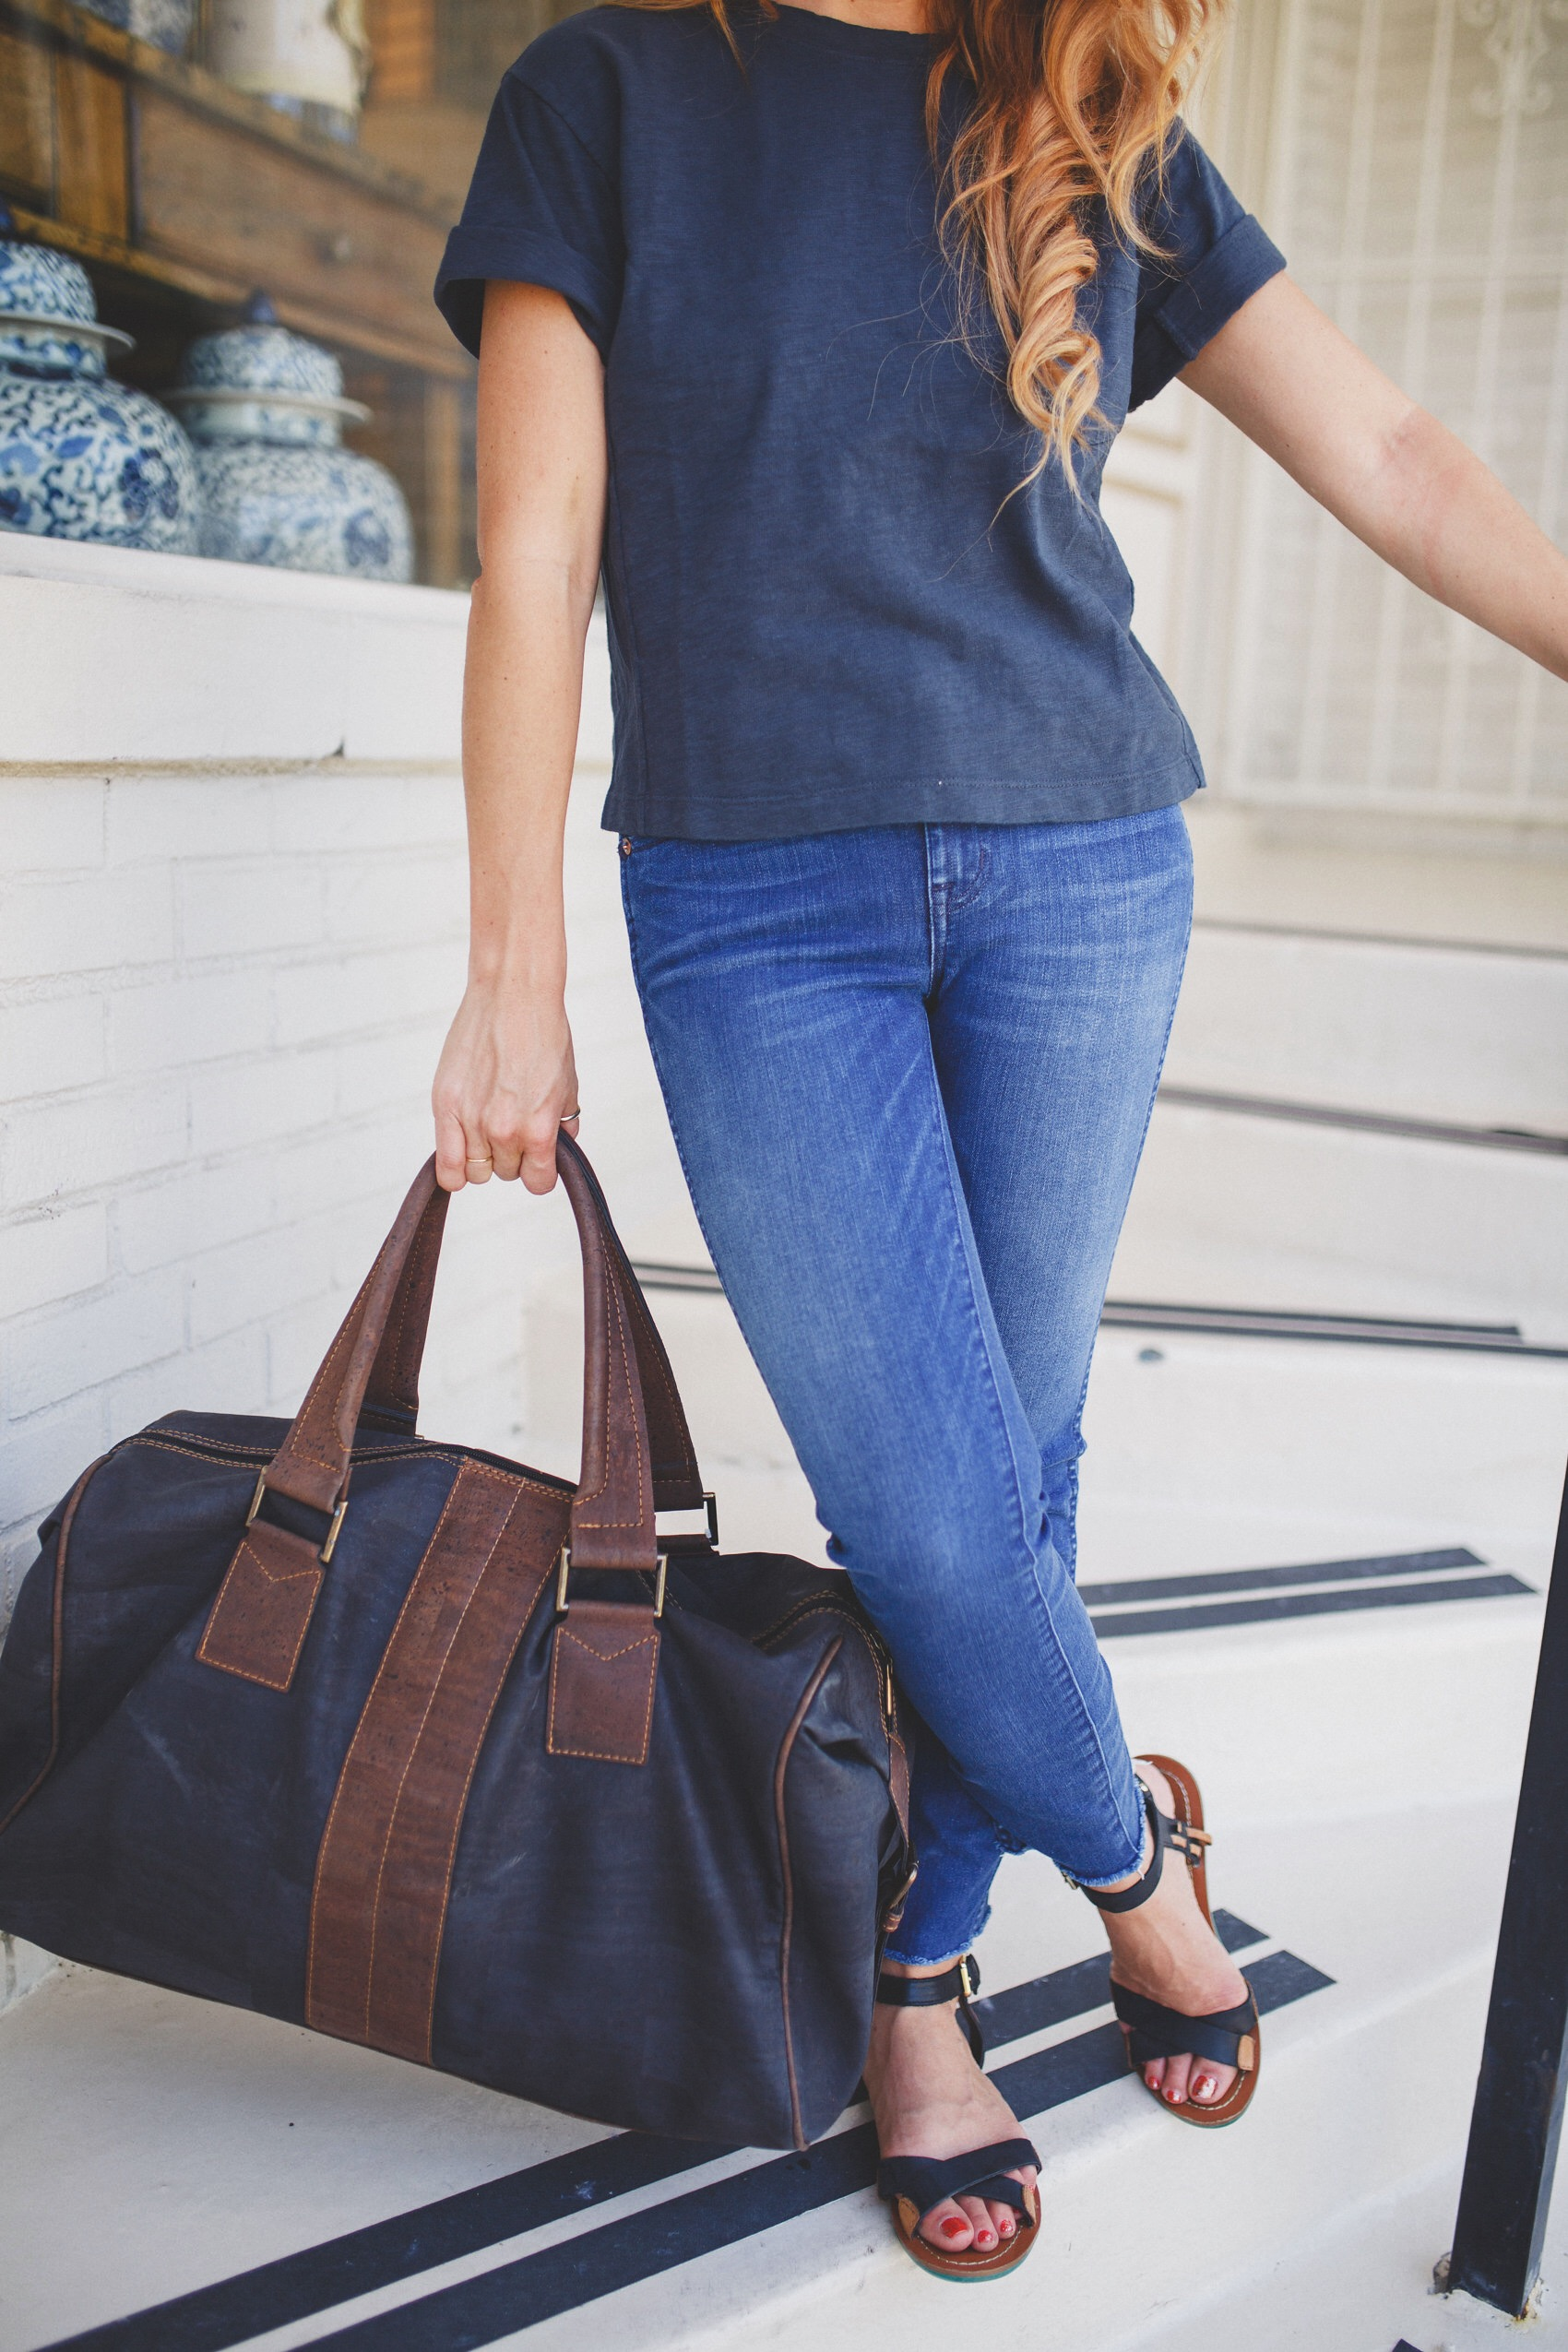 eve duffle bag, vegan leather travel bag and madewell denim